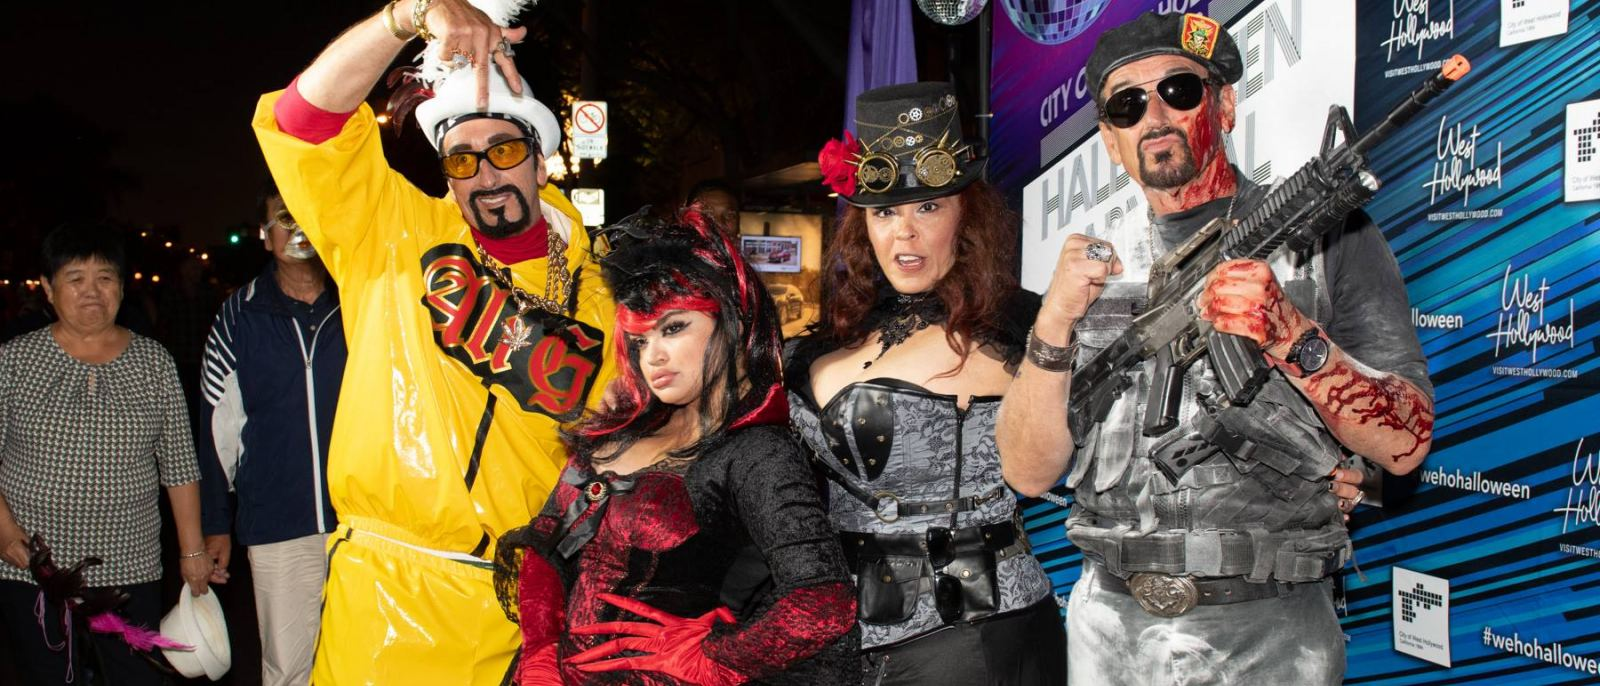 West Hollywood Halloween Carnaval 2018